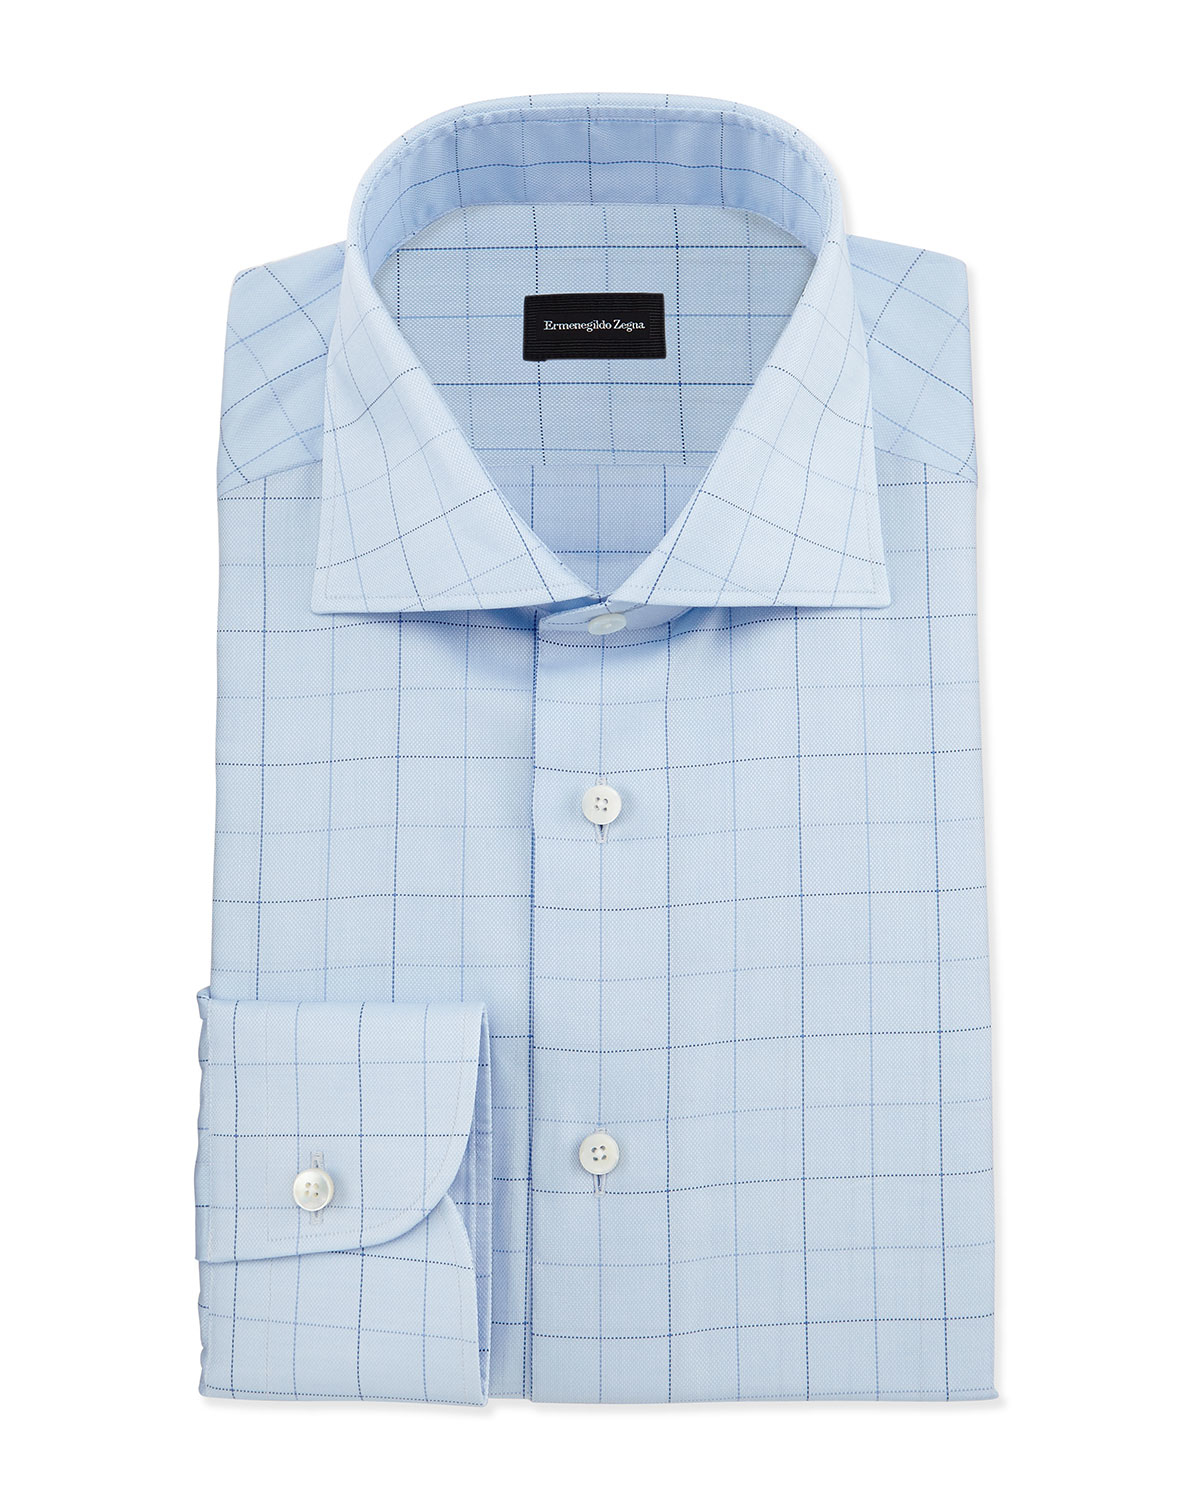 Ermenegildo zegna dotted box check dress shirt in blue for Blue check dress shirt